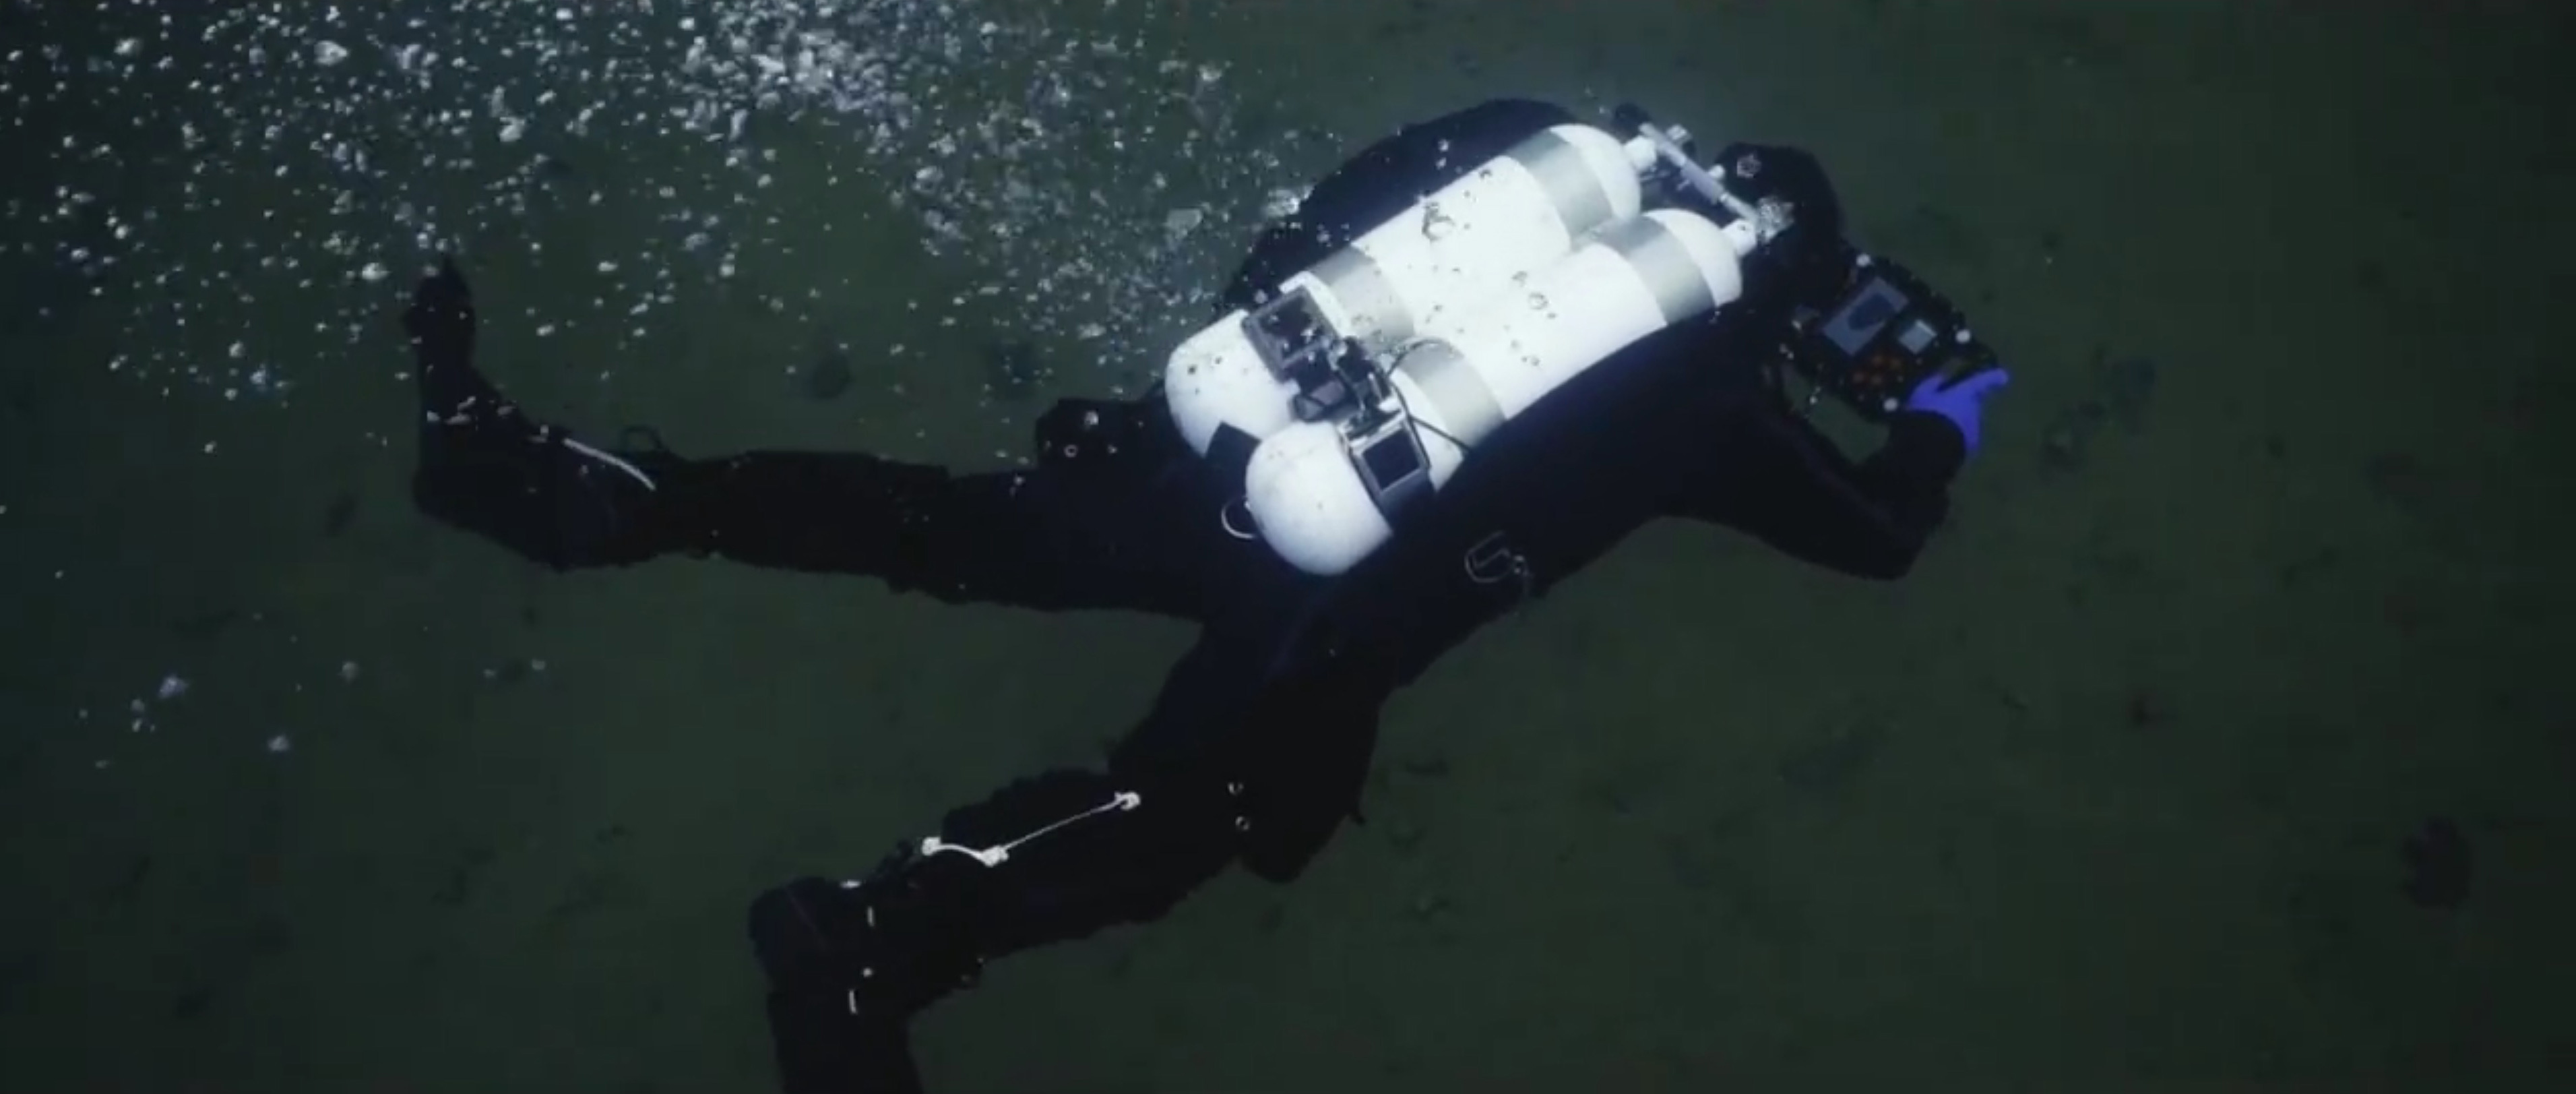 Diving with uw navigation system